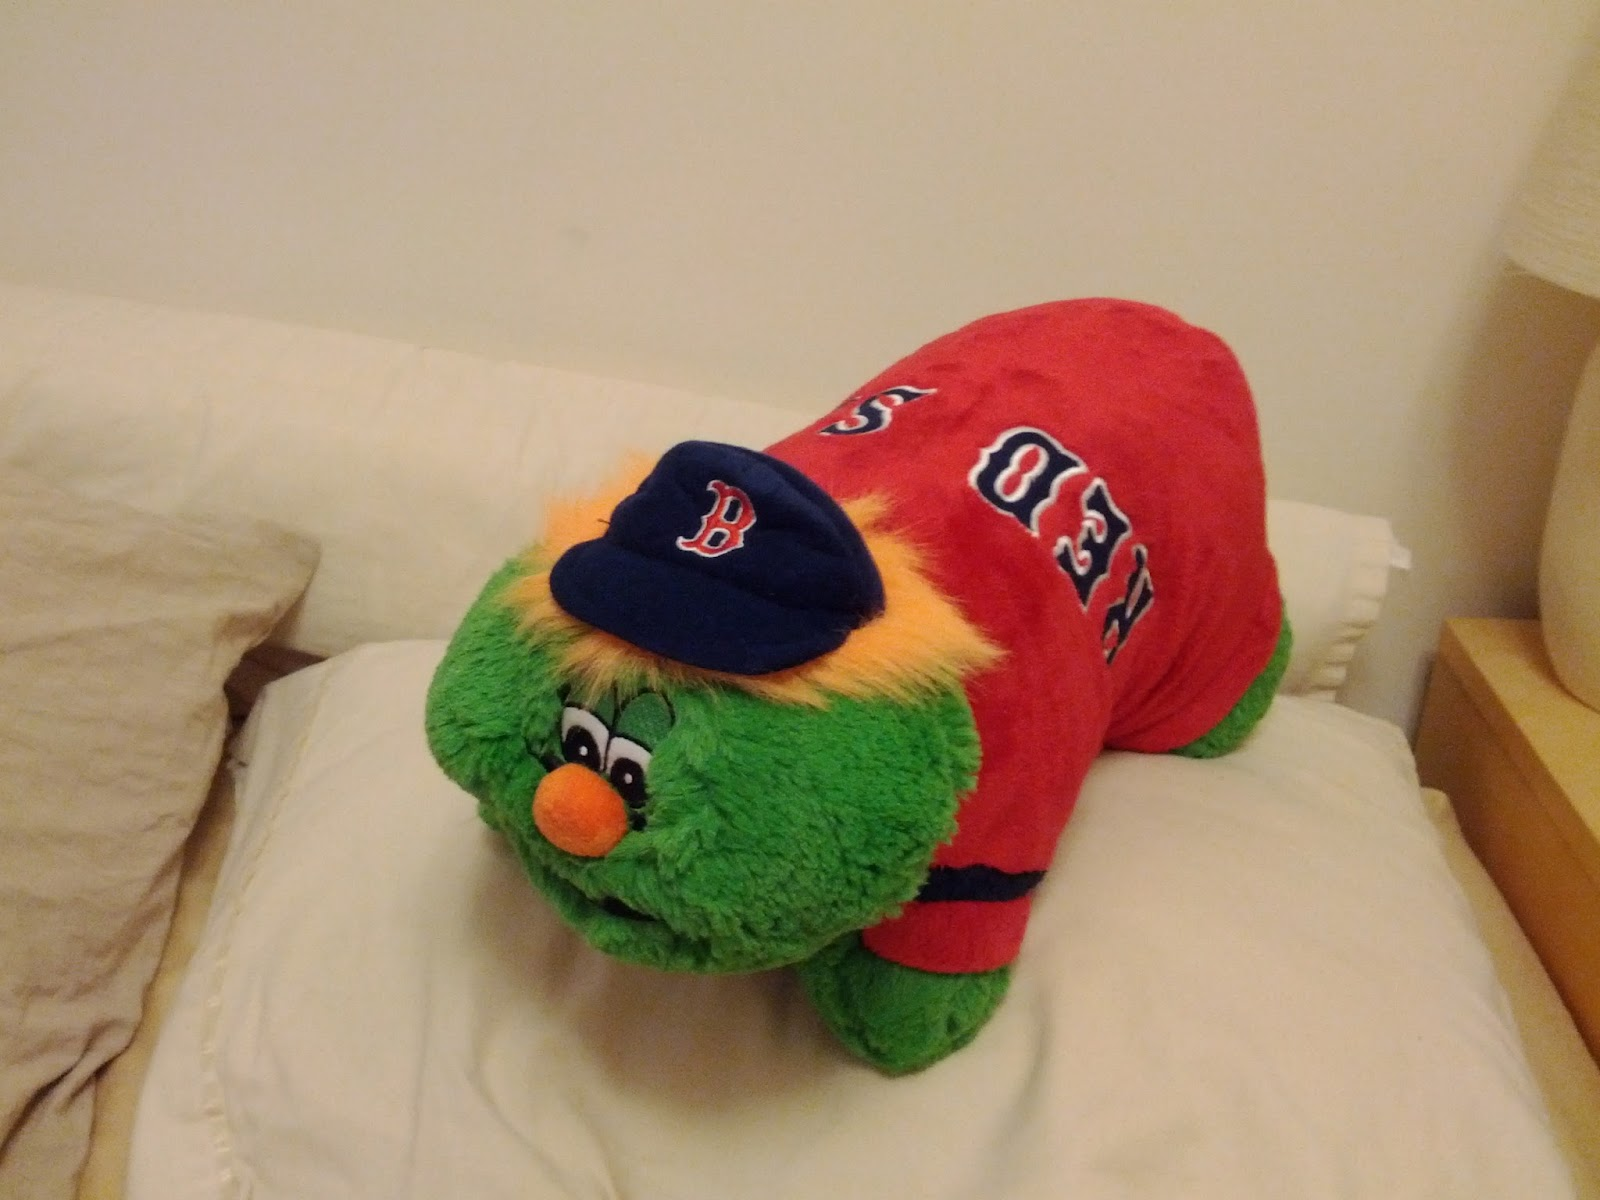 30 And Counting Wally The Green Monster Pillow Pet